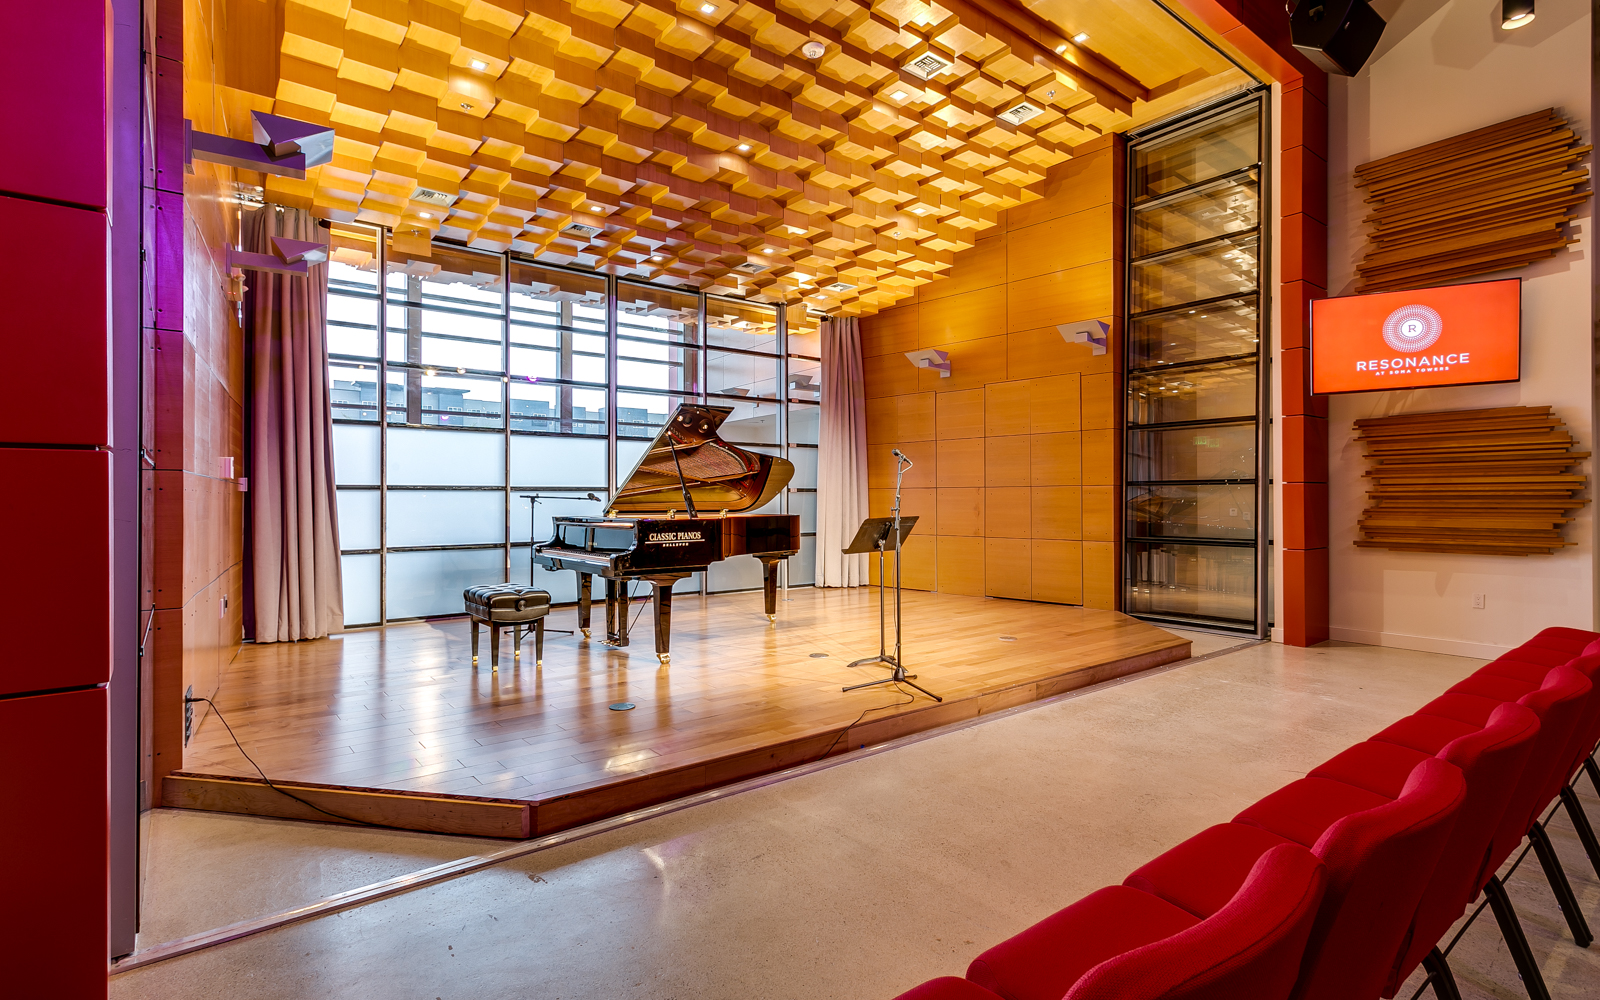 Concert Hall (5 of 10)